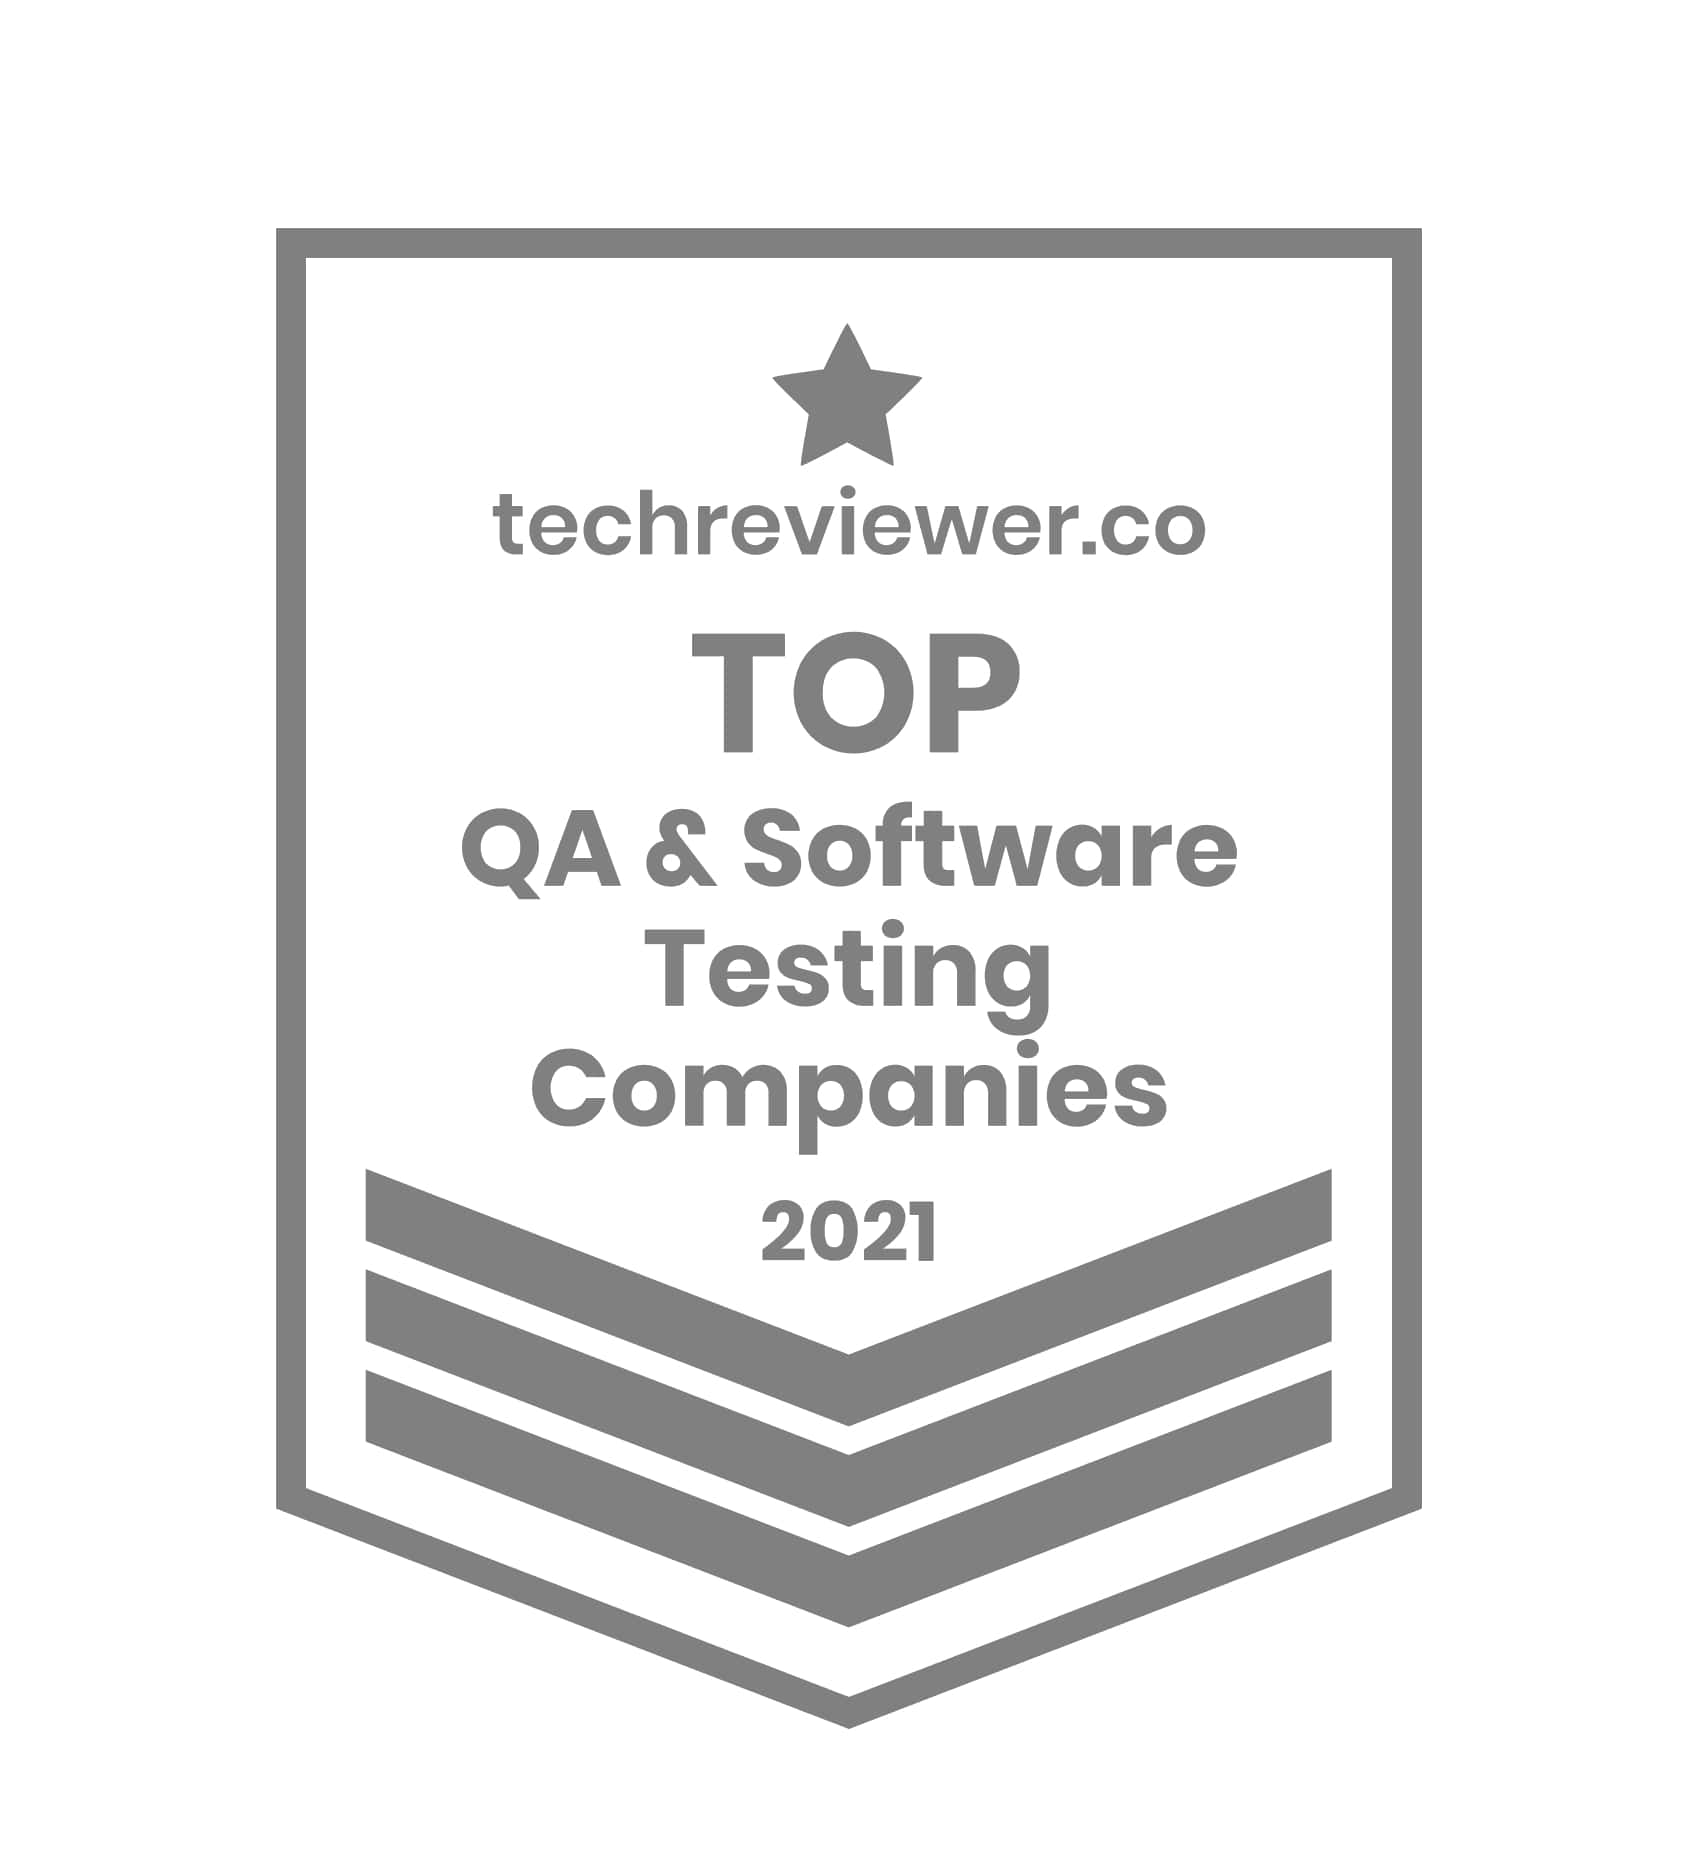 Performance Lab is among Top QA and Software Testing companies